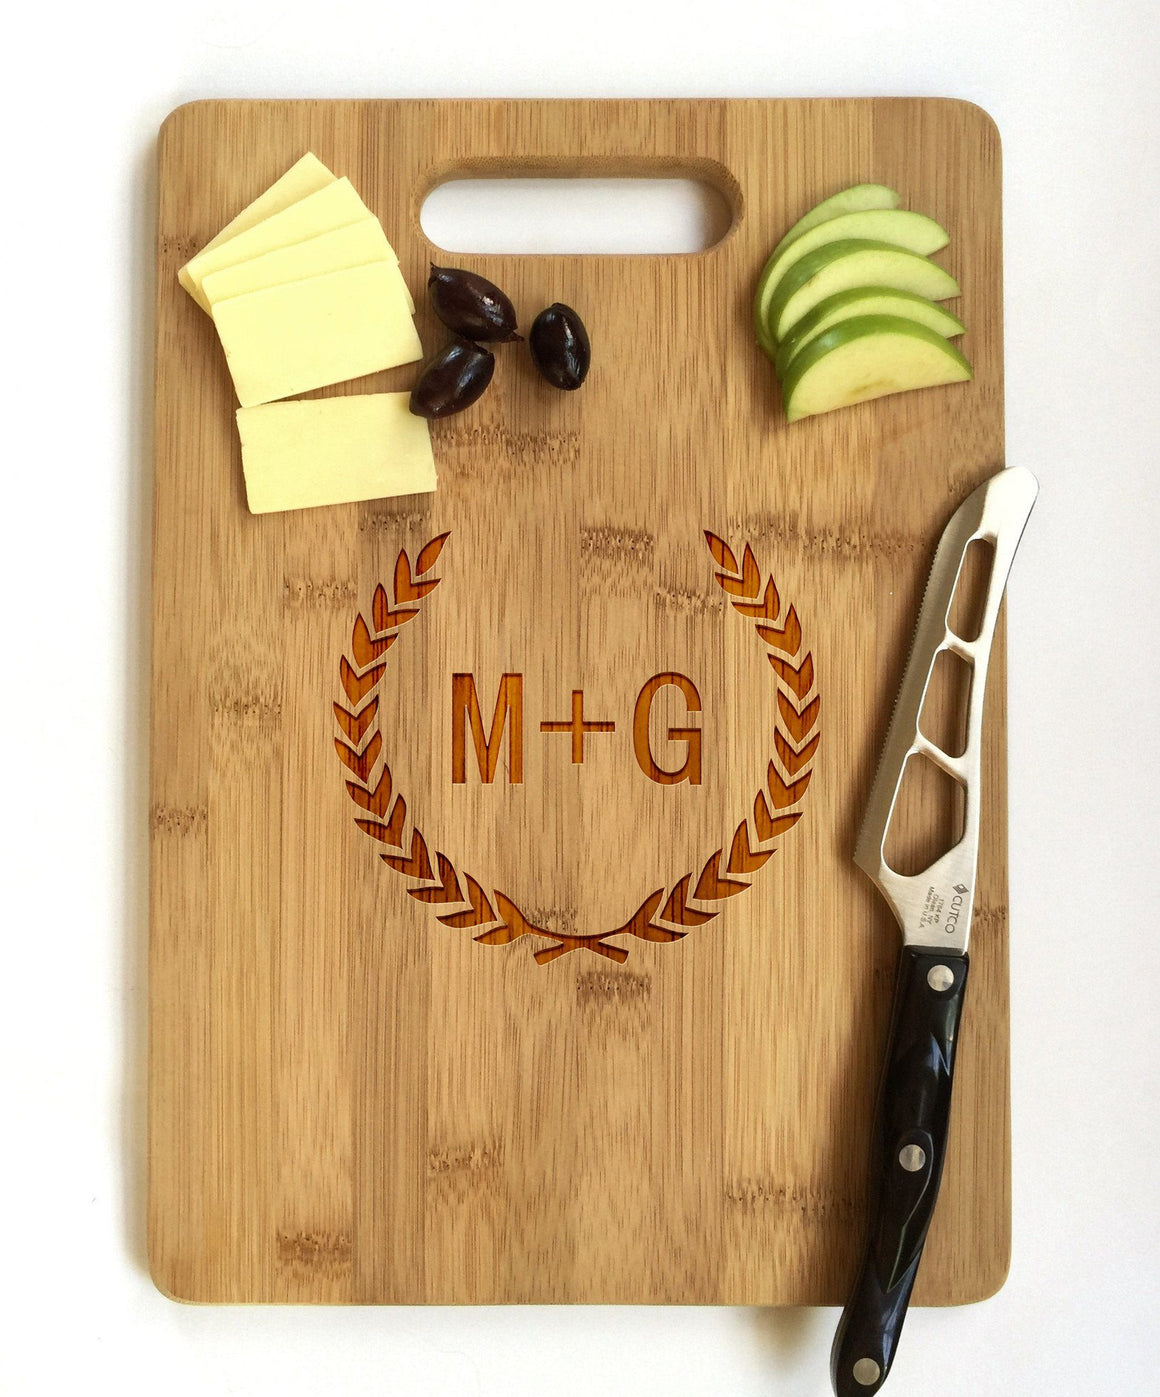 Custom Engraved Cutting Board with Laurel Wreath Design